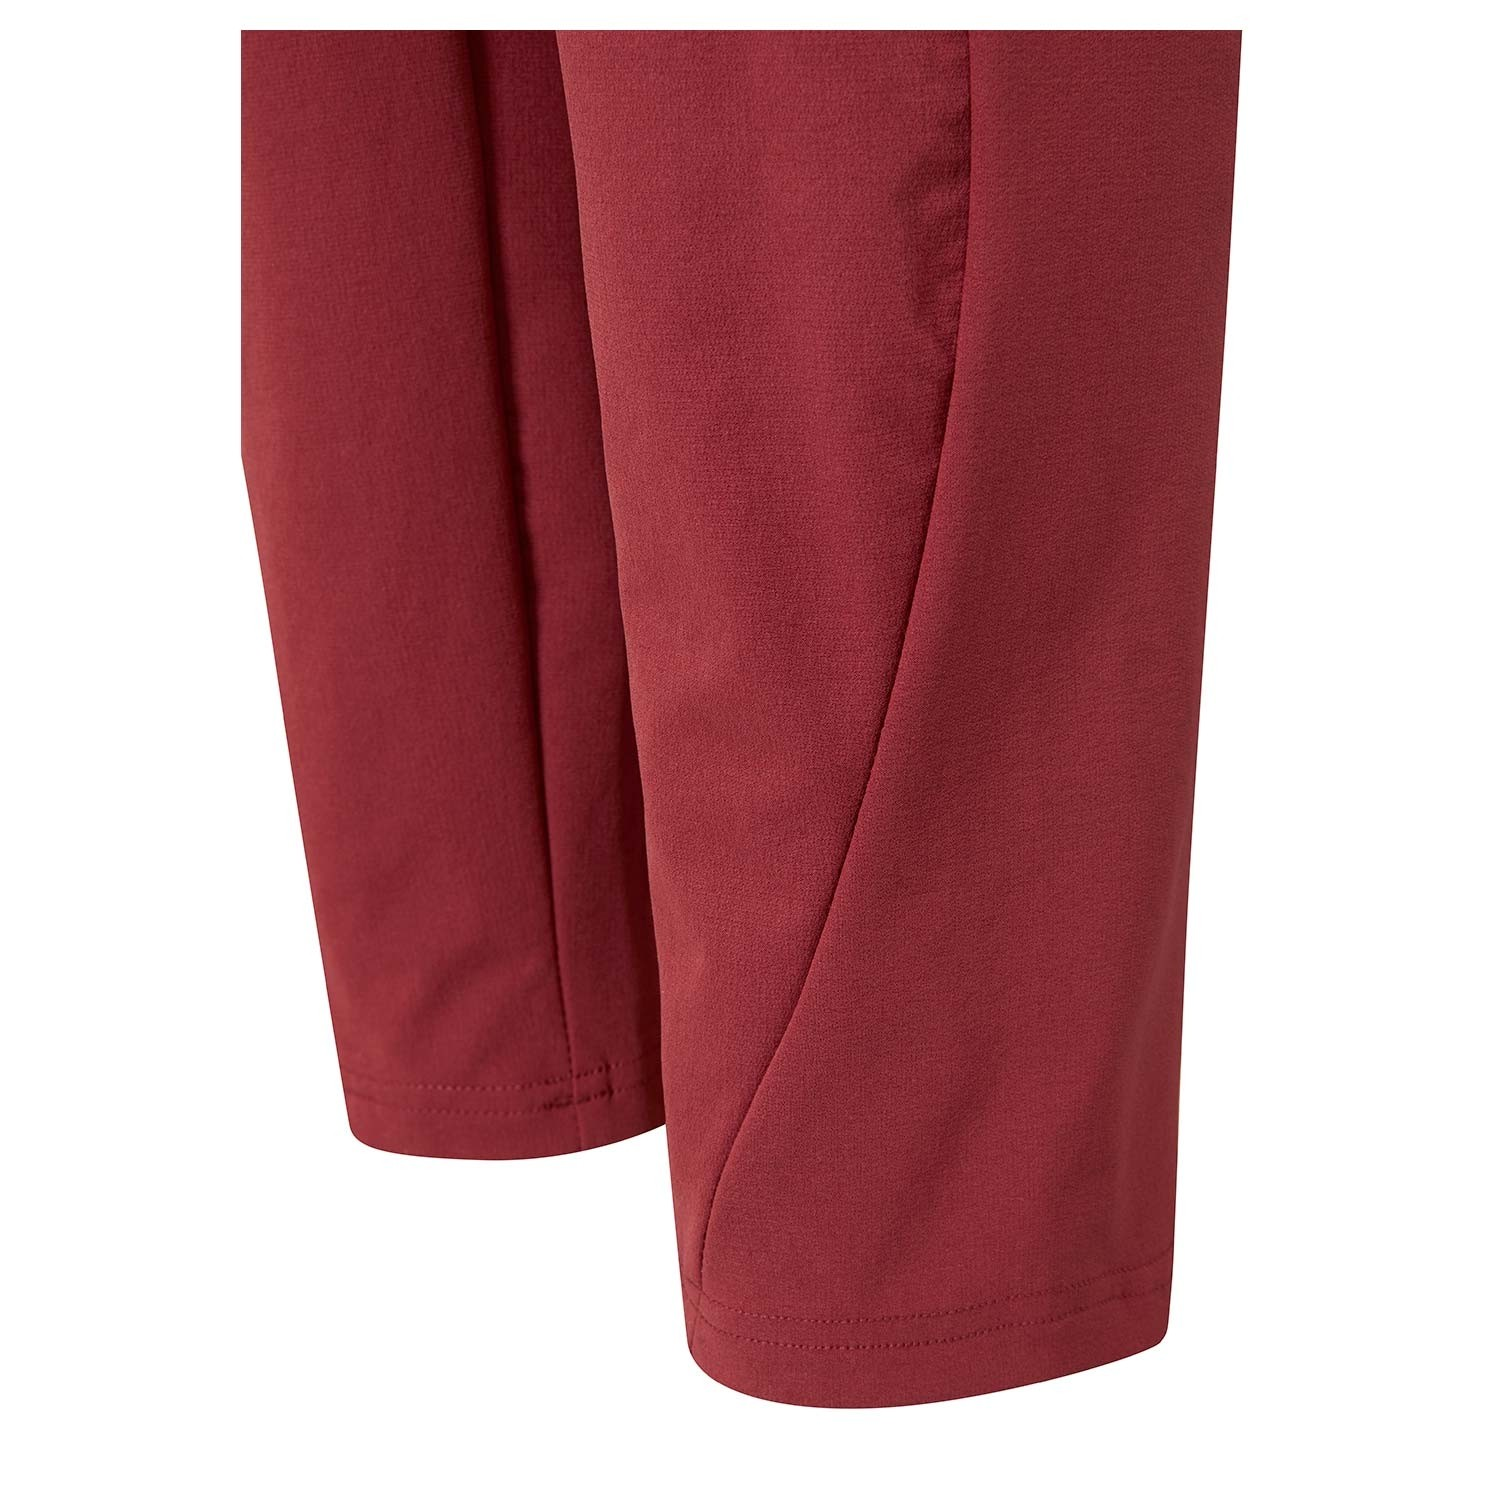 Rab Elevation Pants - Women's Softshell - Oxblood Red